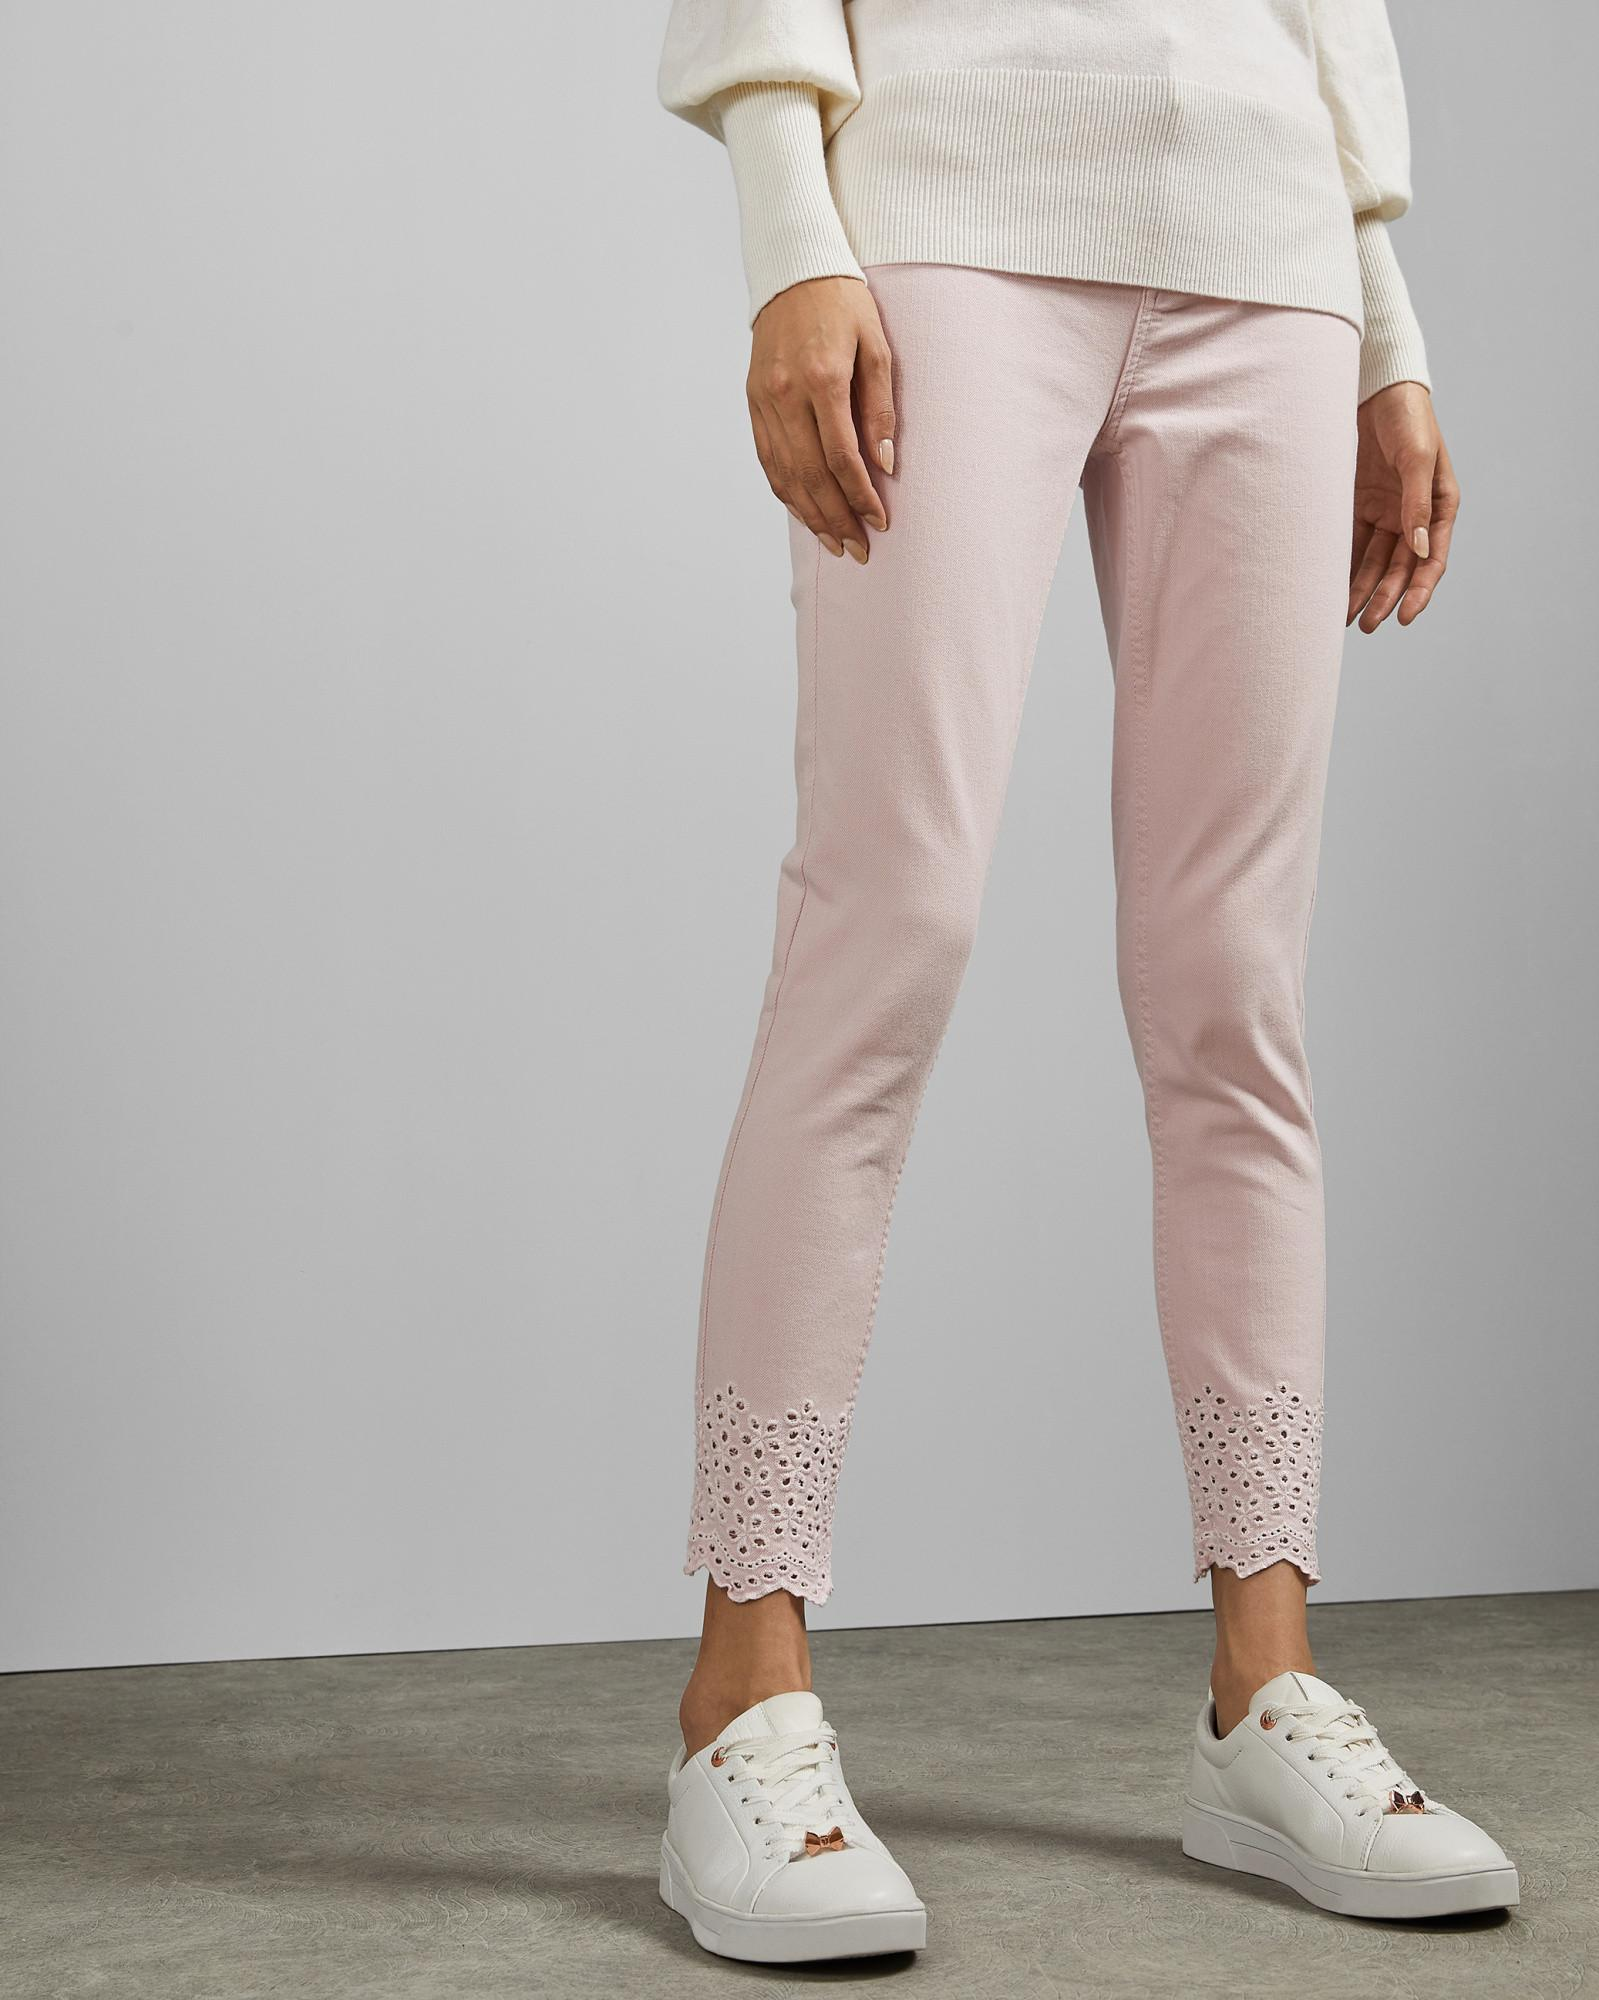 d488f4ec0 Lyst - Ted Baker Embroidered Jeans in Pink